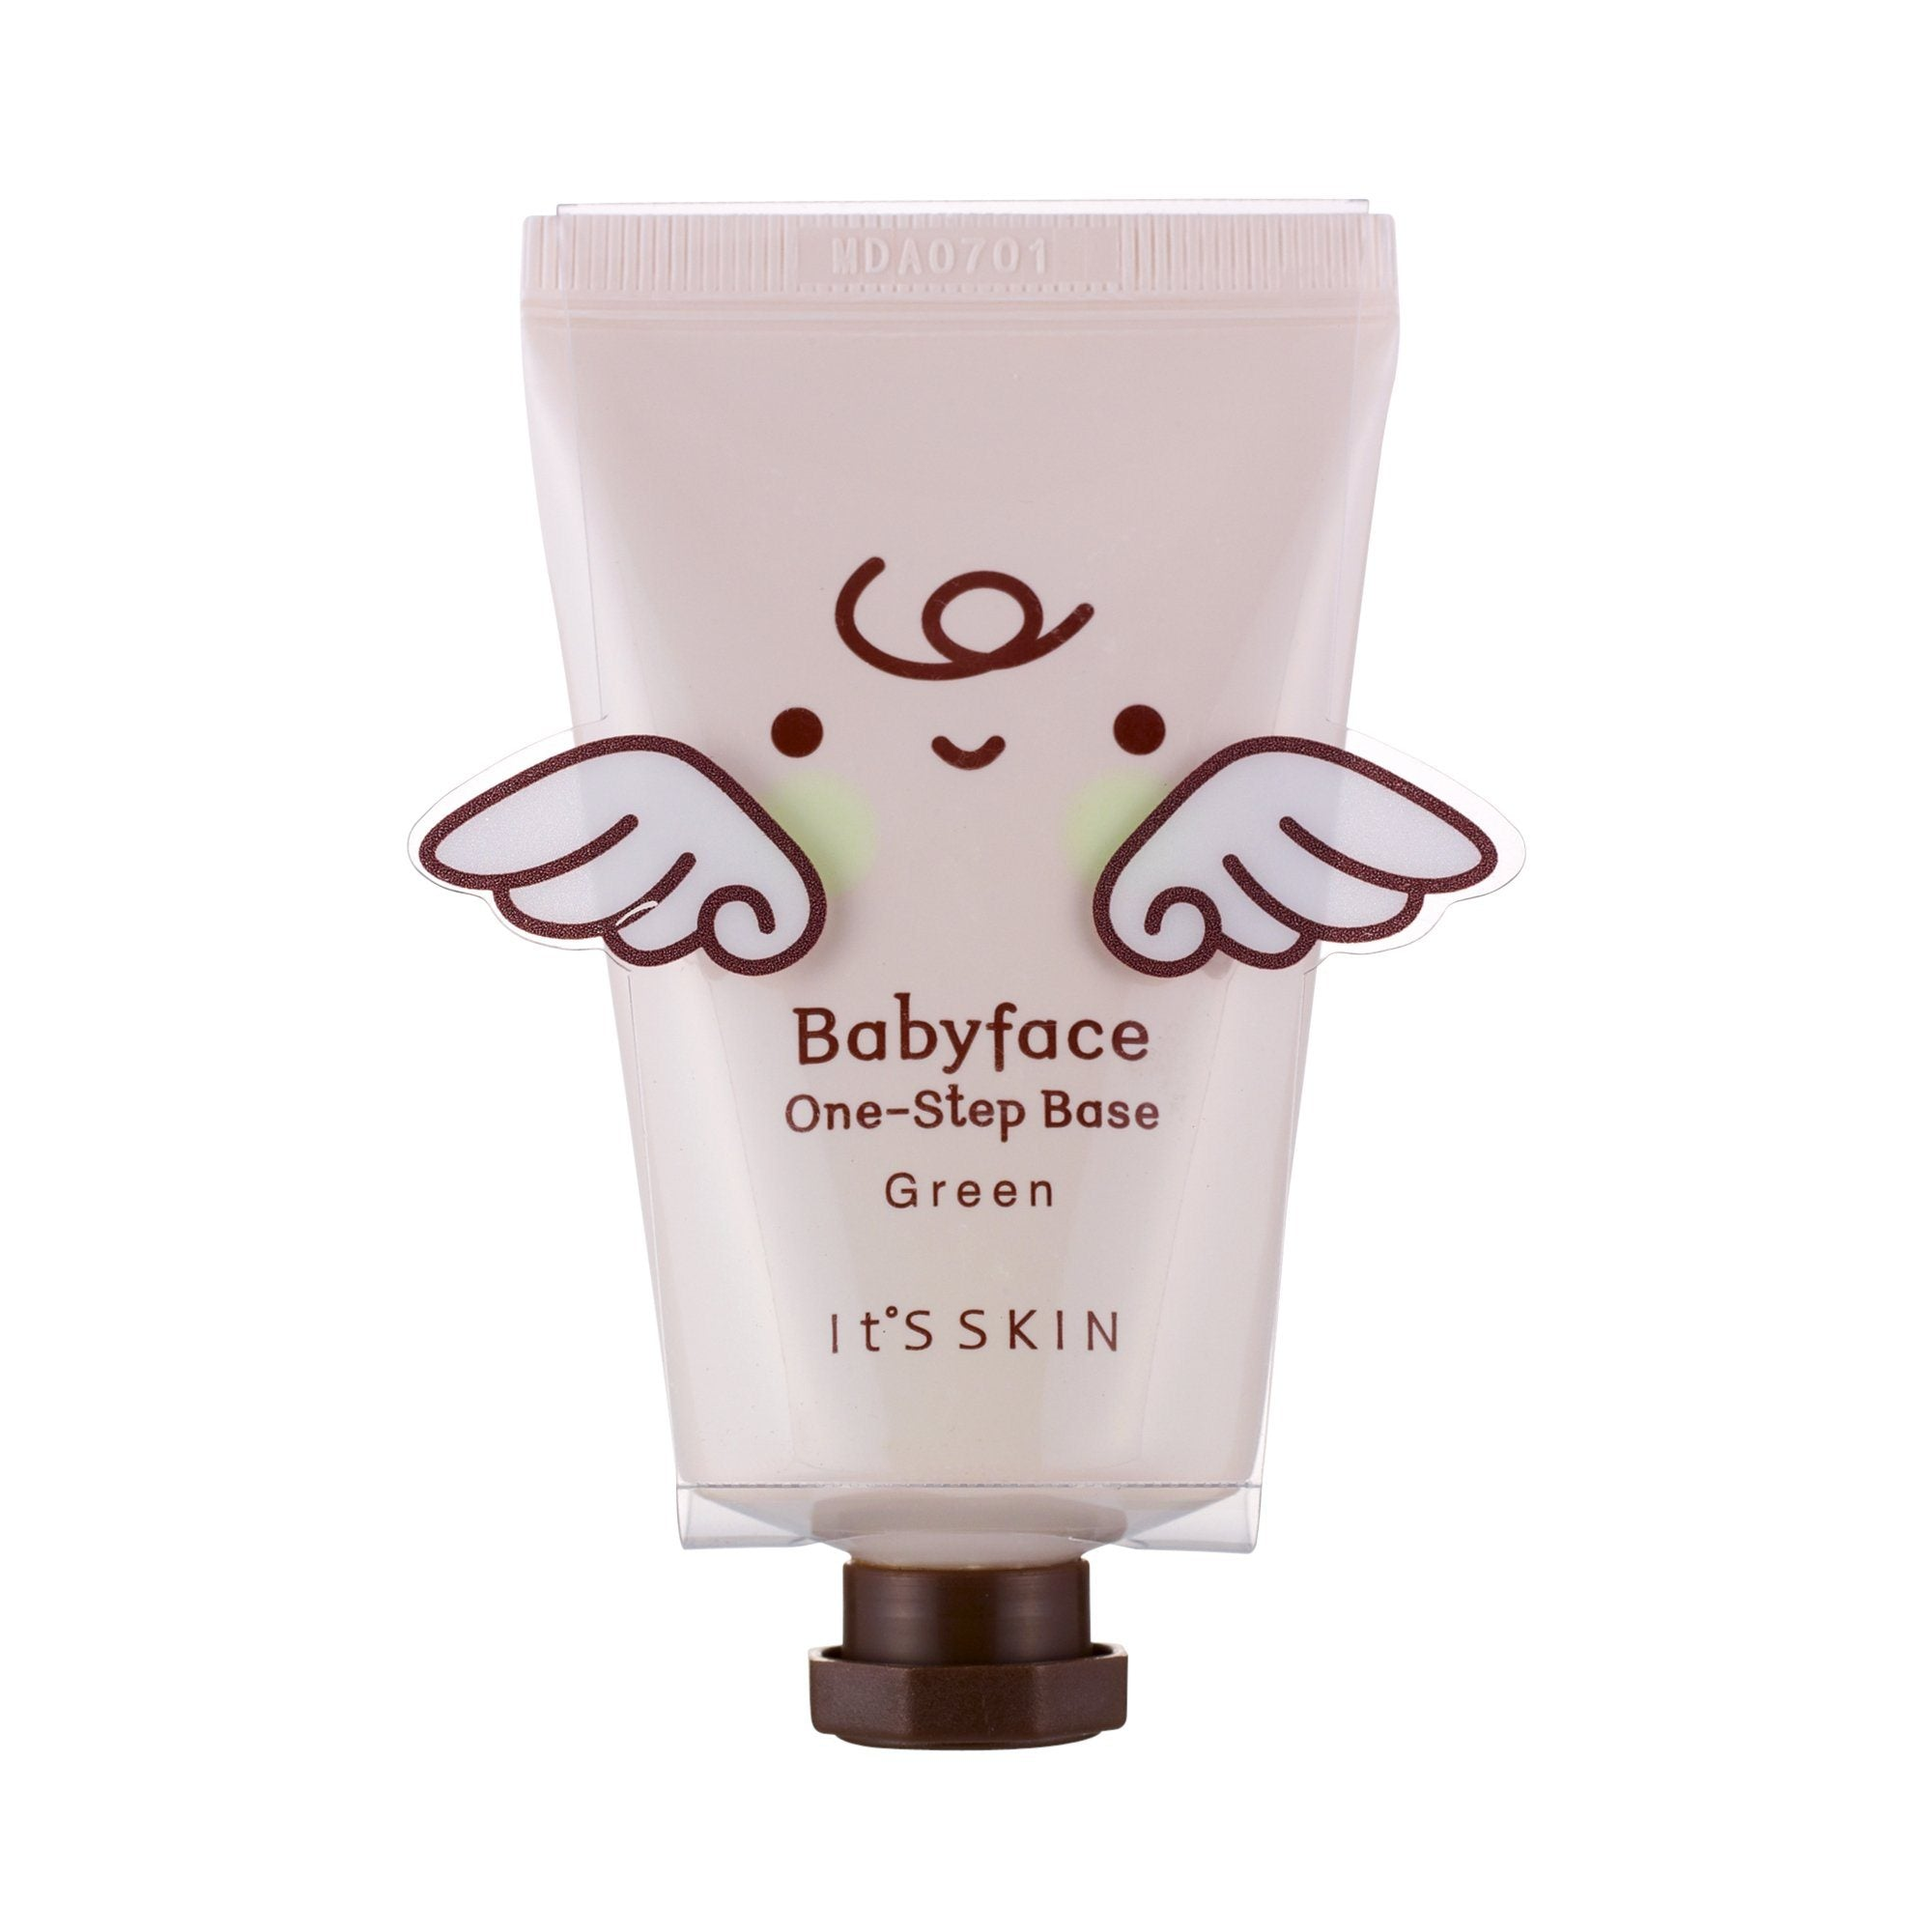 Health & Beauty > Personal Care > Cosmetics > Makeup > Face Makeup > Face Primer - Babyface One-Step Base Green Baza Pod Makijaż 35 G